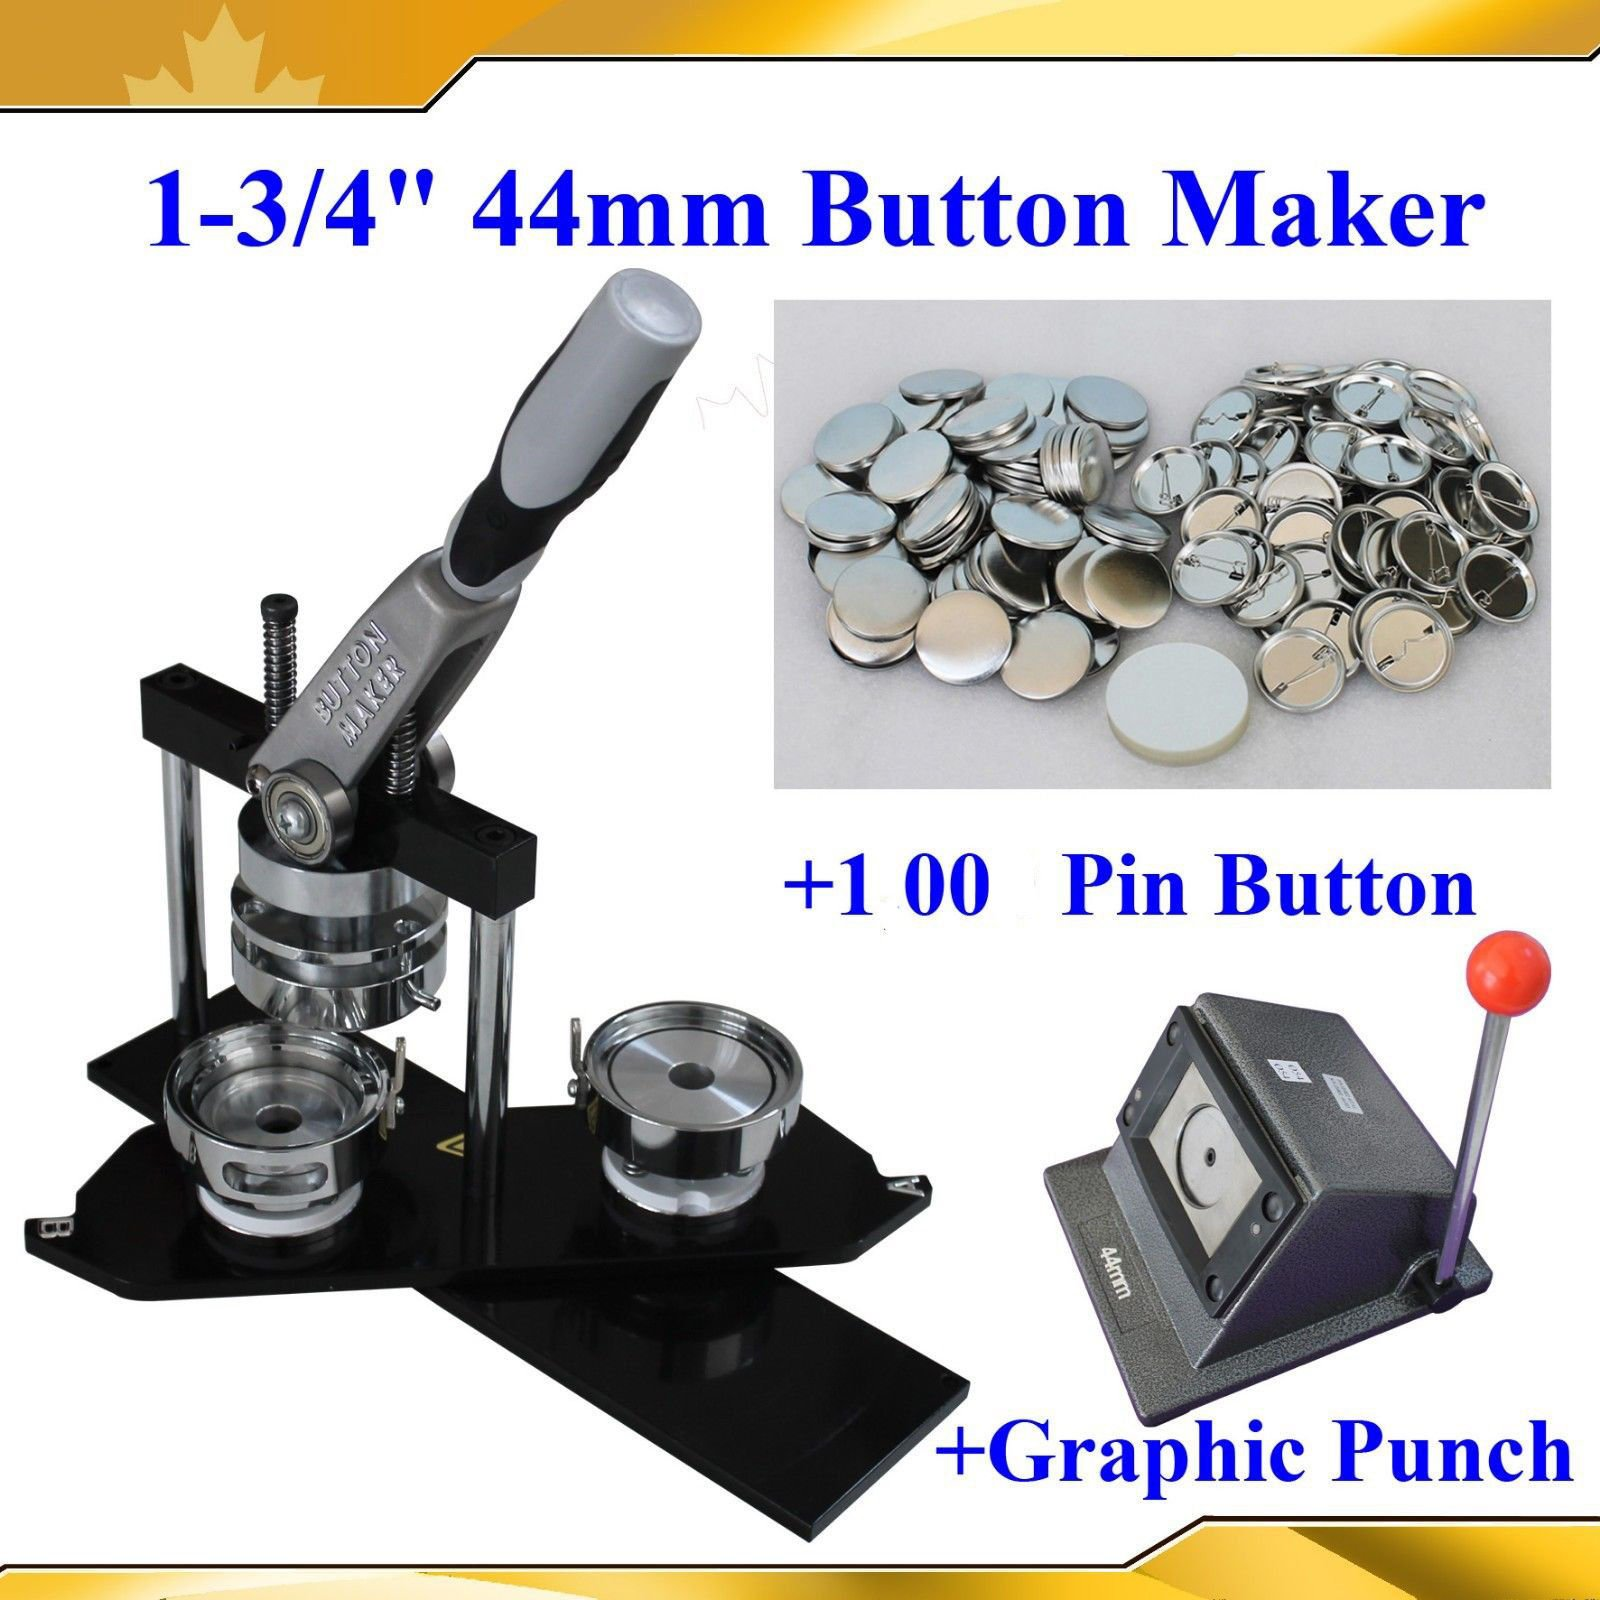 Asc365 1-3/4'' N4 Button Maker+1,00 All Metal Pin Badge+heavy Duty Punch Cutter by Button Maker